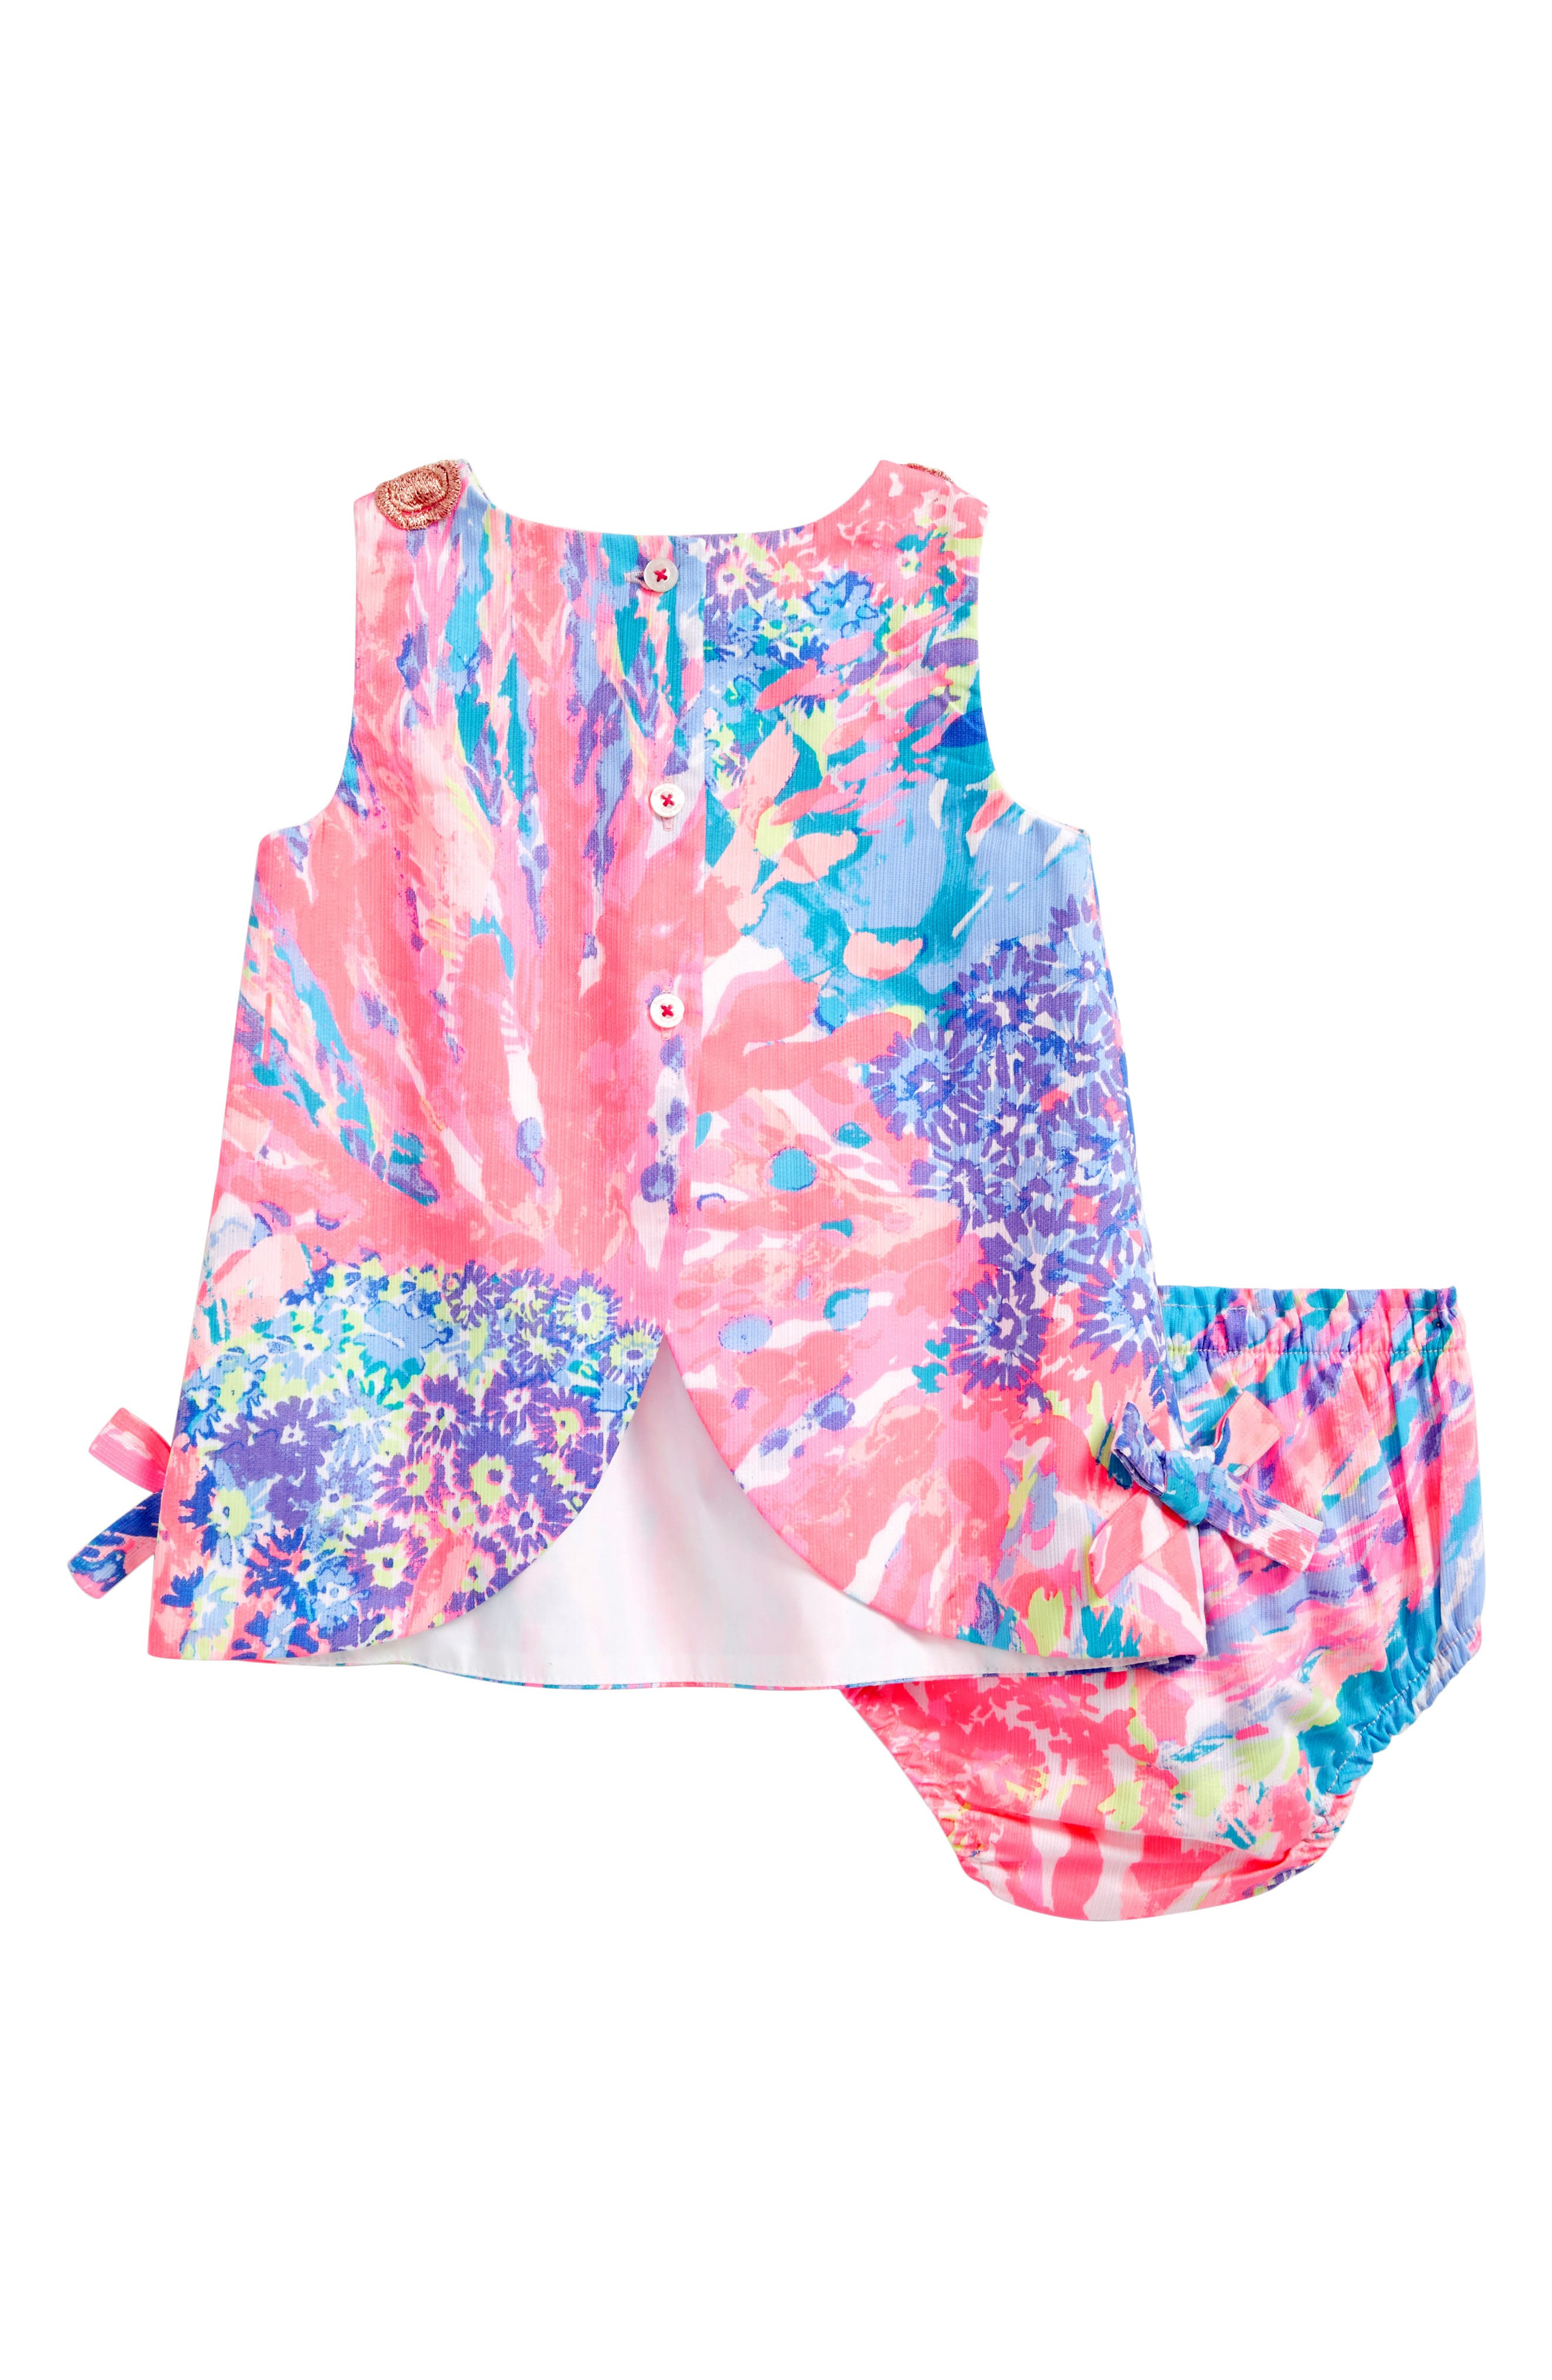 Baby Lilly Shift Dress,                             Alternate thumbnail 2, color,                             659